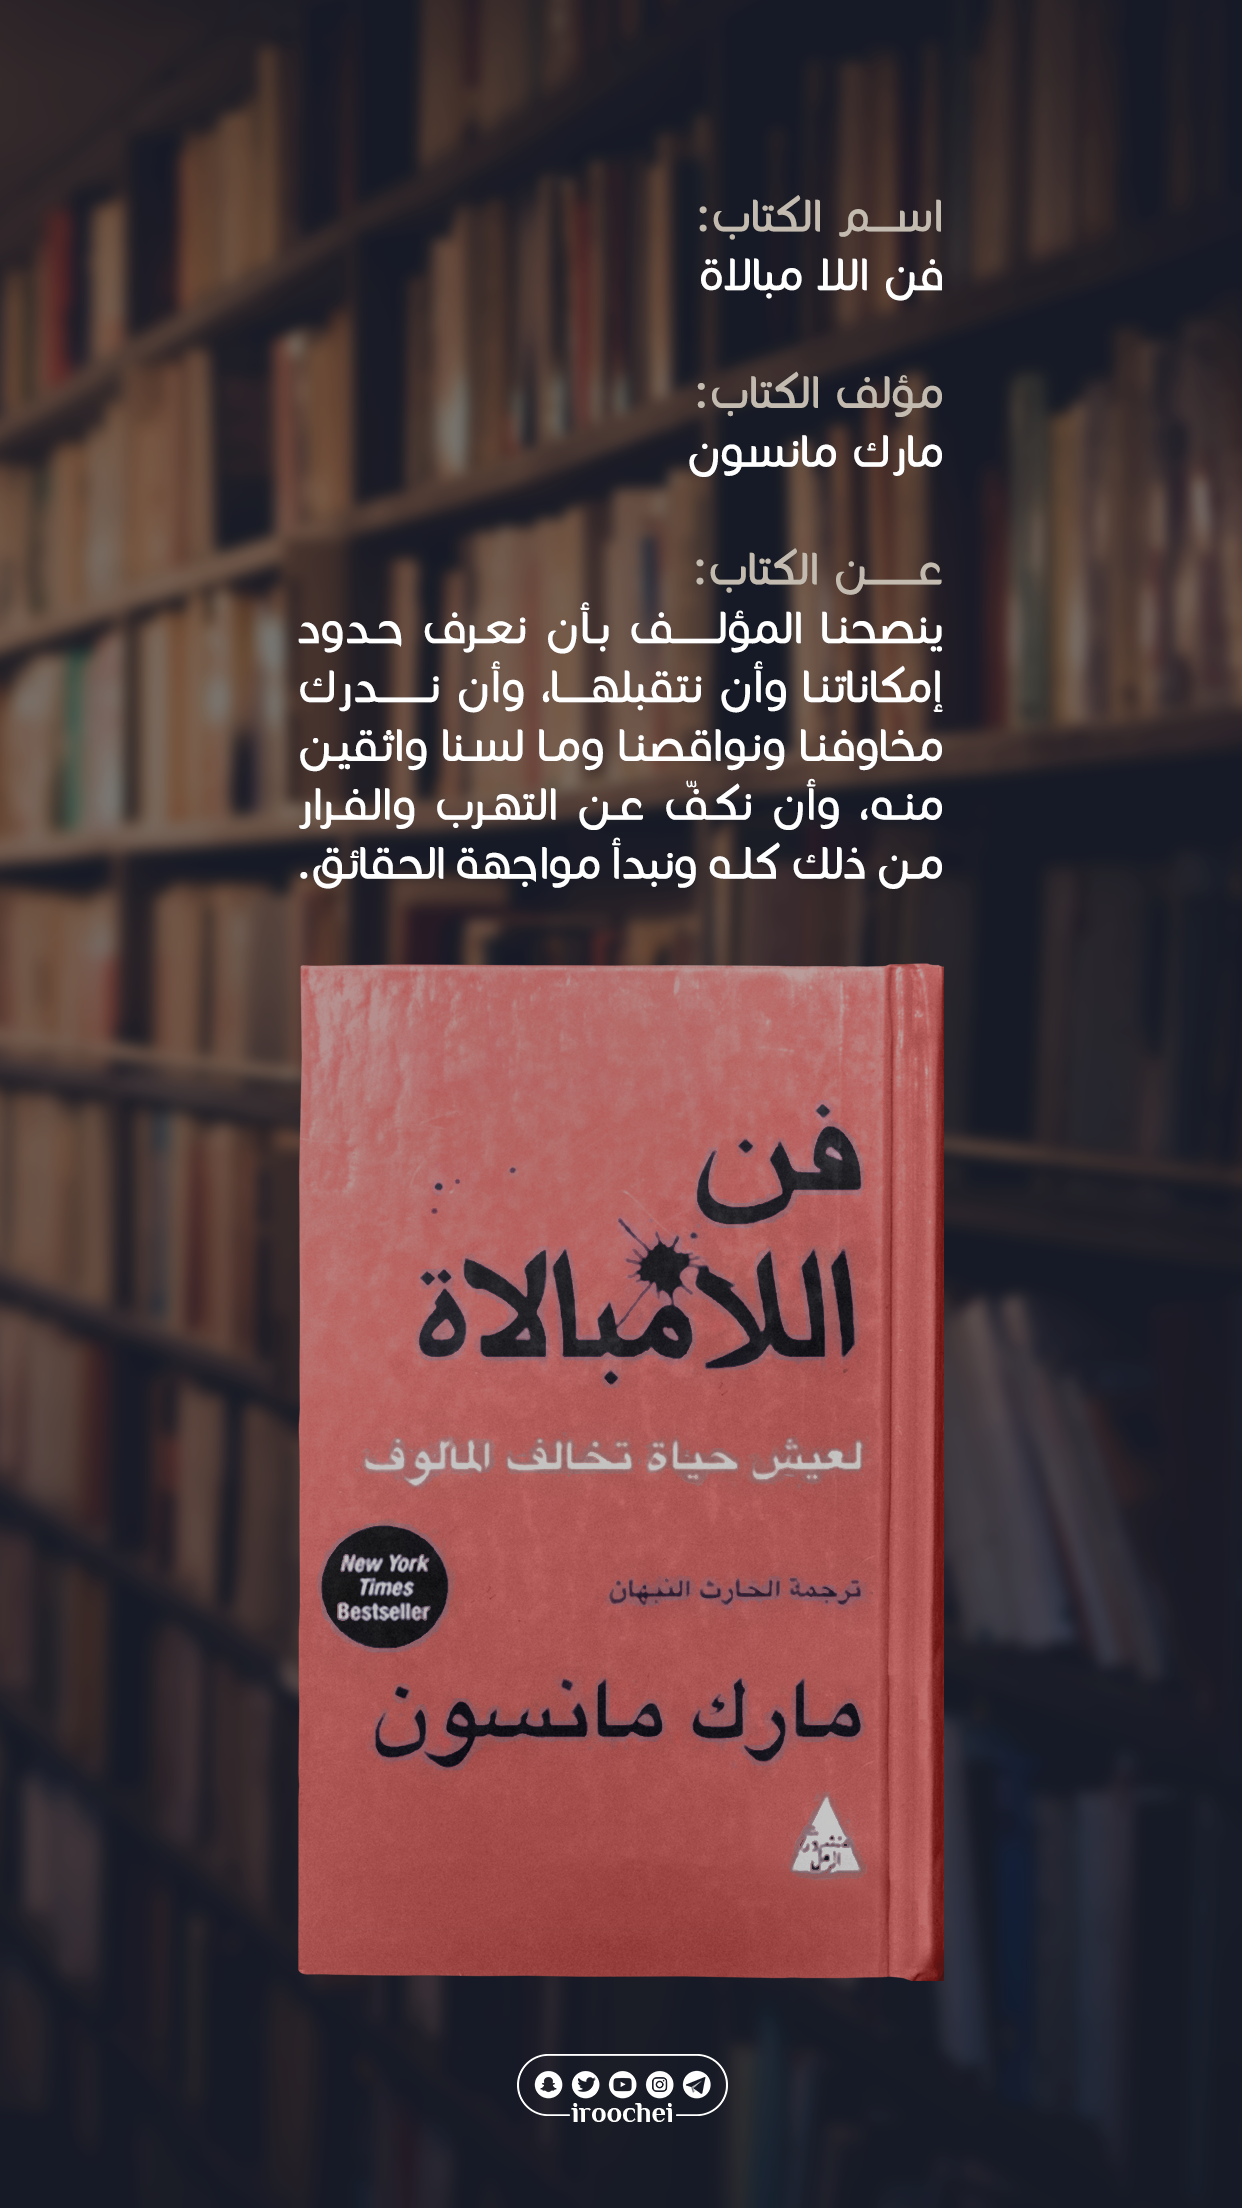 Pin By وتين On مكتبة روشي Spirituality Books Fiction Books Worth Reading Inspirational Books